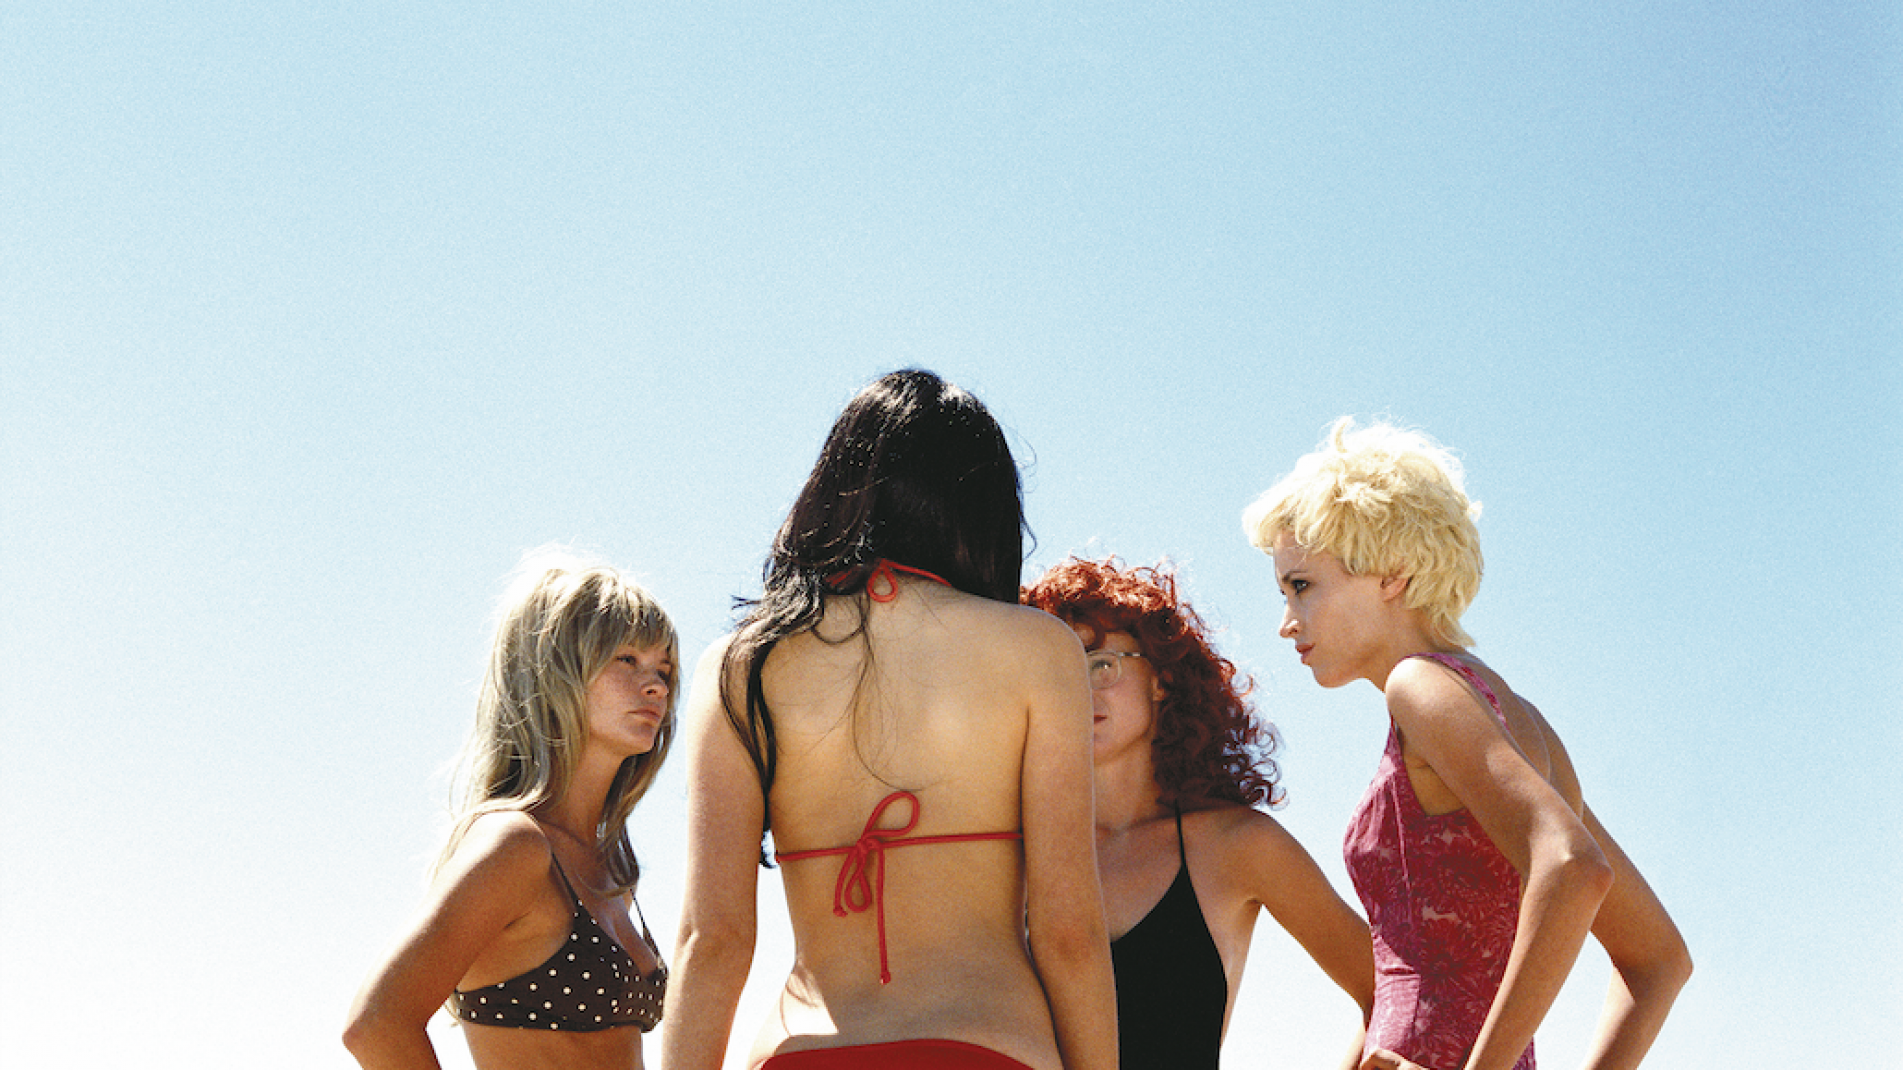 Photos: Courtesy Alex Prager Studio and Lehmann Maupin, New York, Hong Kong and Seoul